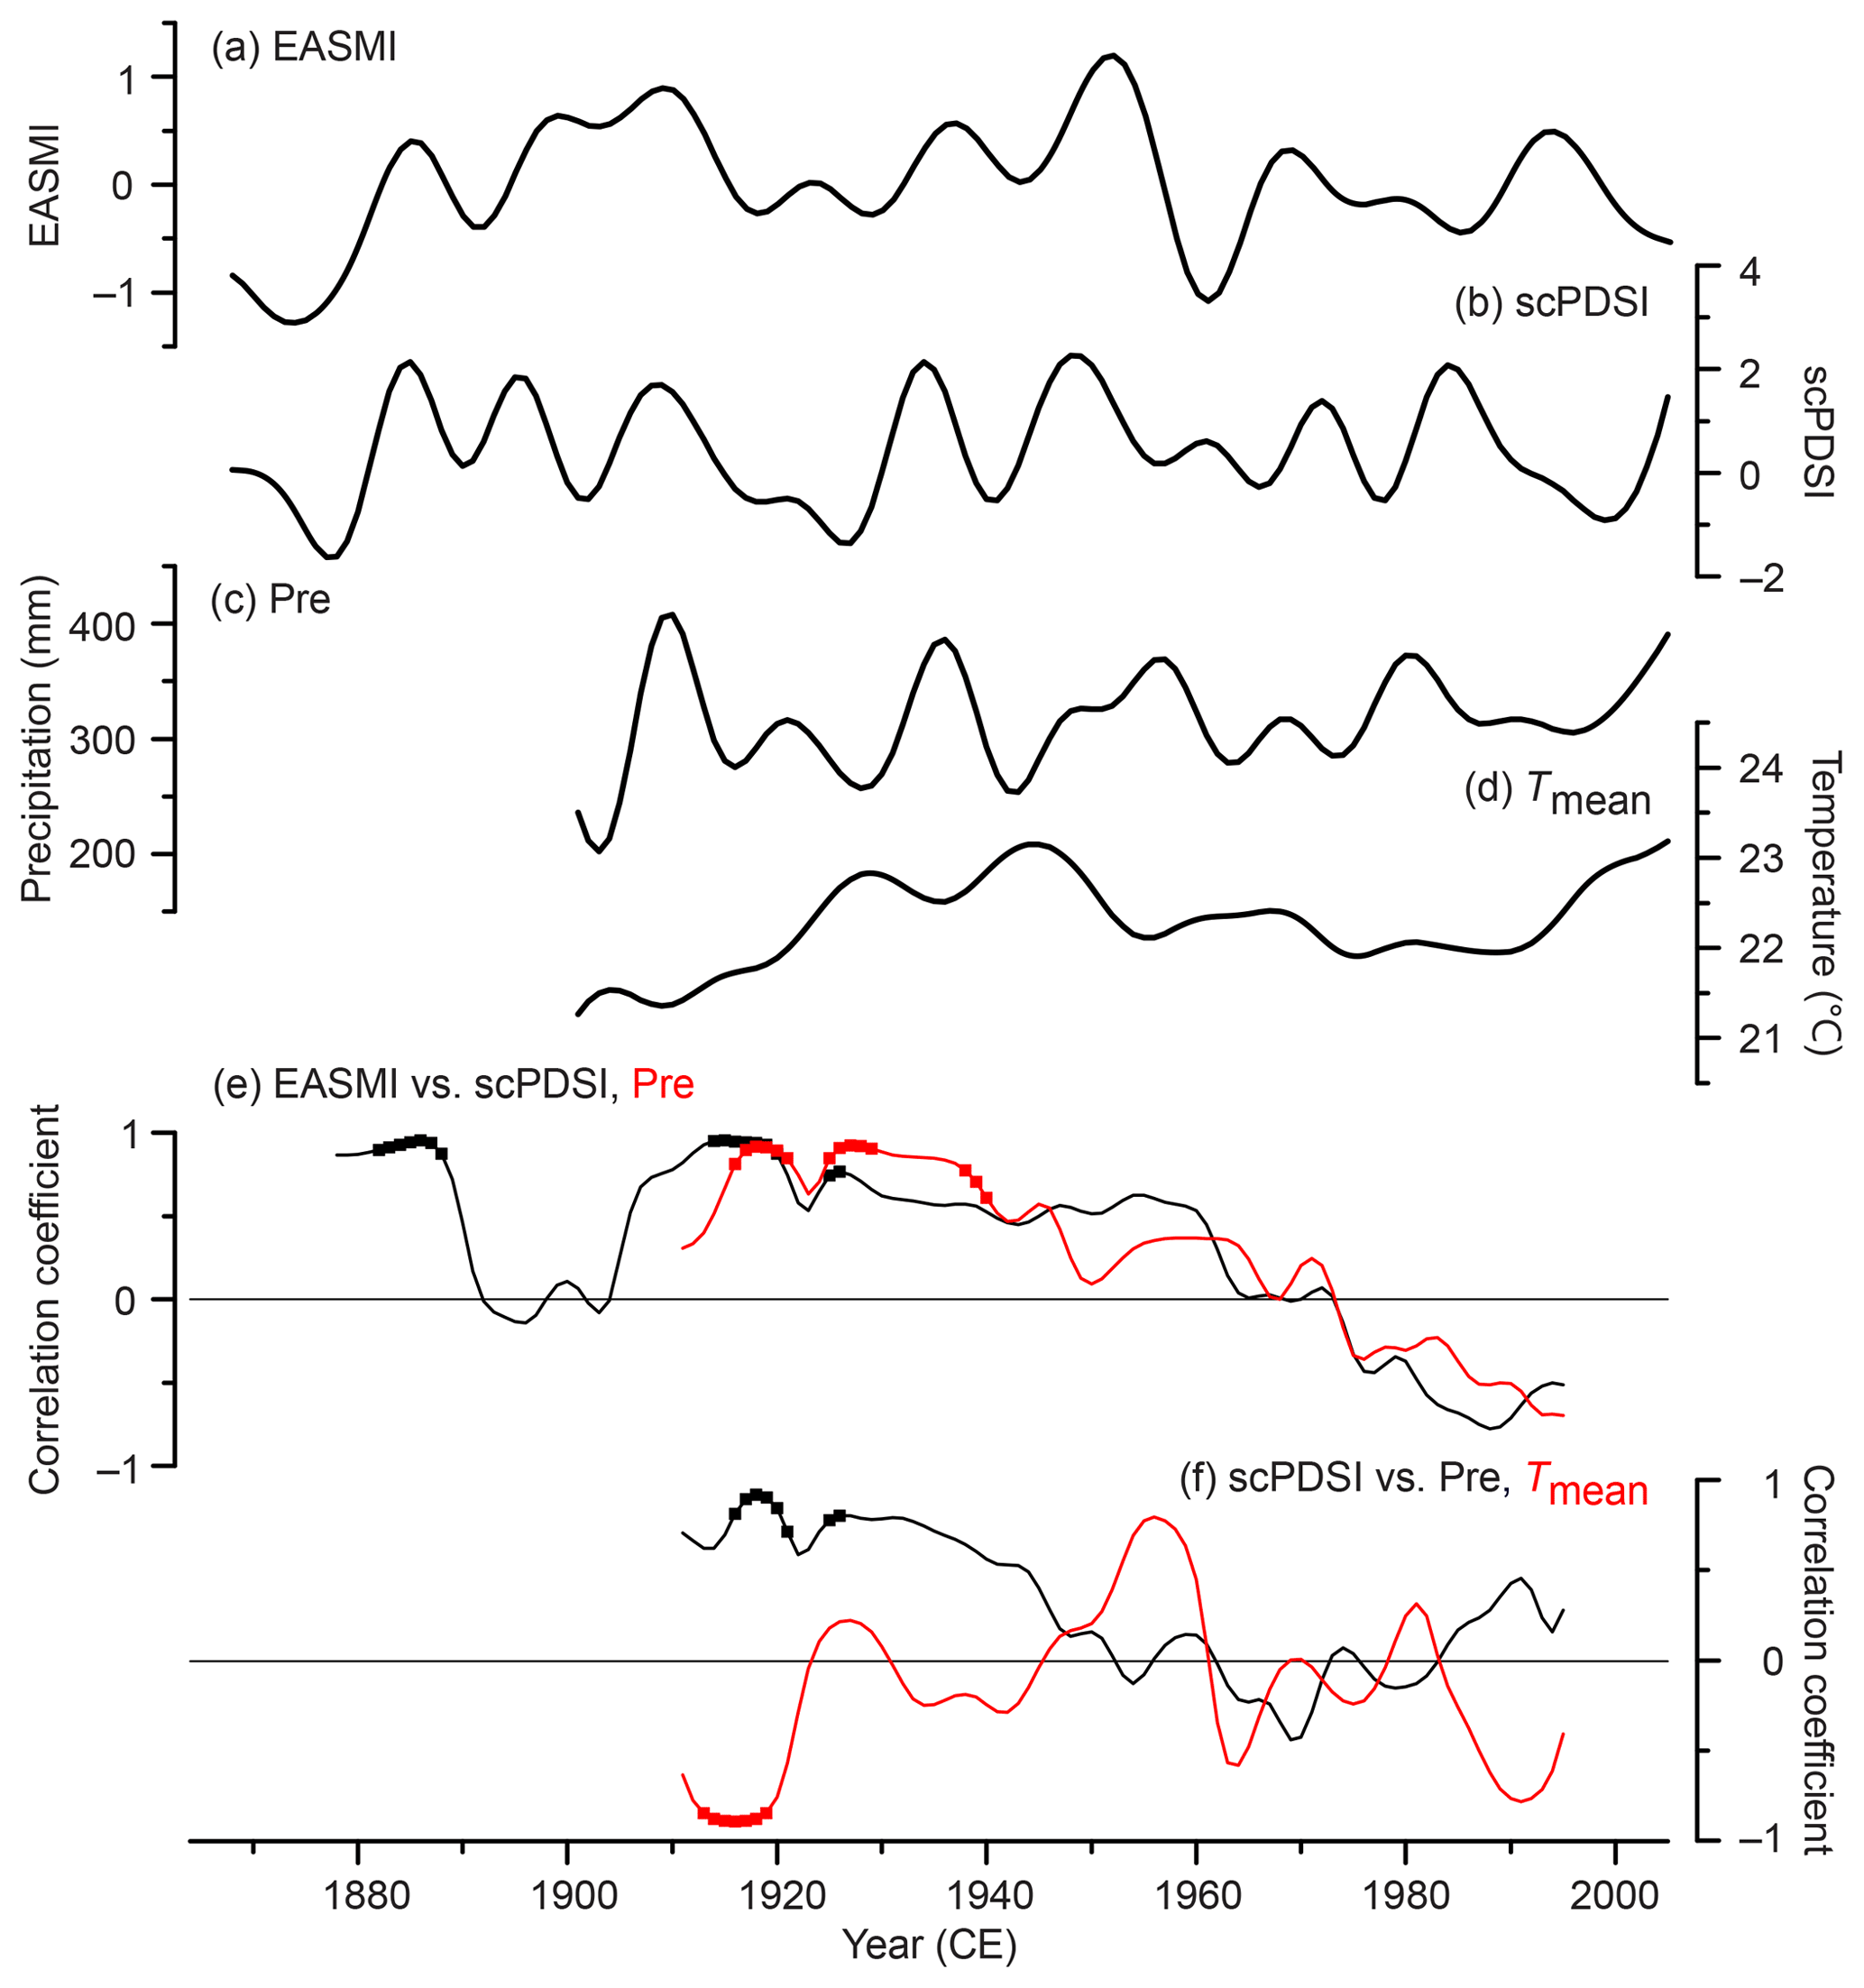 CP - Early summer hydroclimatic signals are captured well by tree